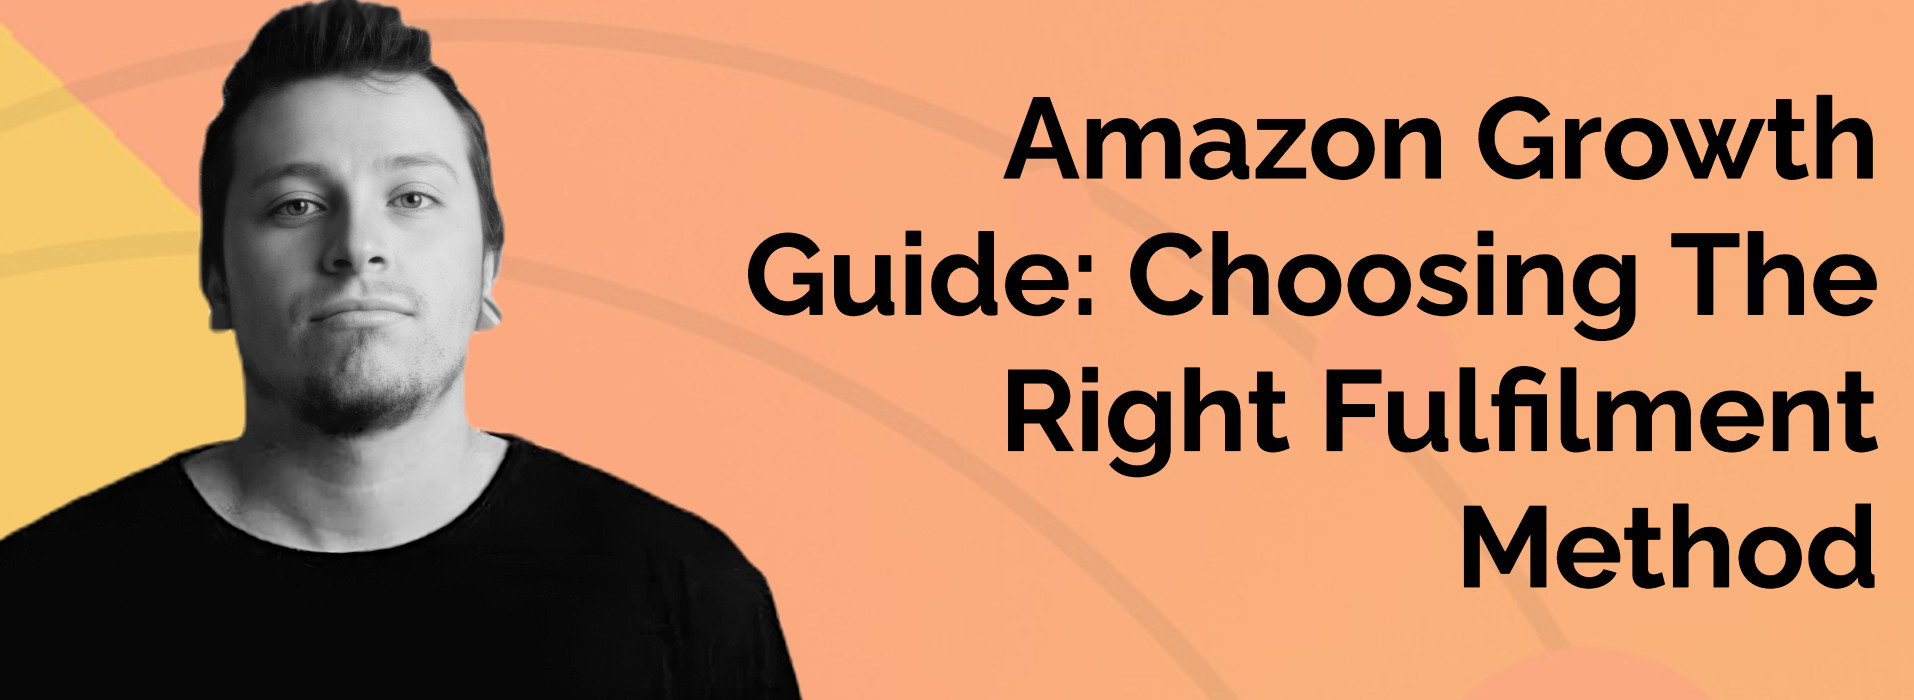 webinar REPLAY: Amazon Growth Guide - Choosing The Right Fulfilment Method